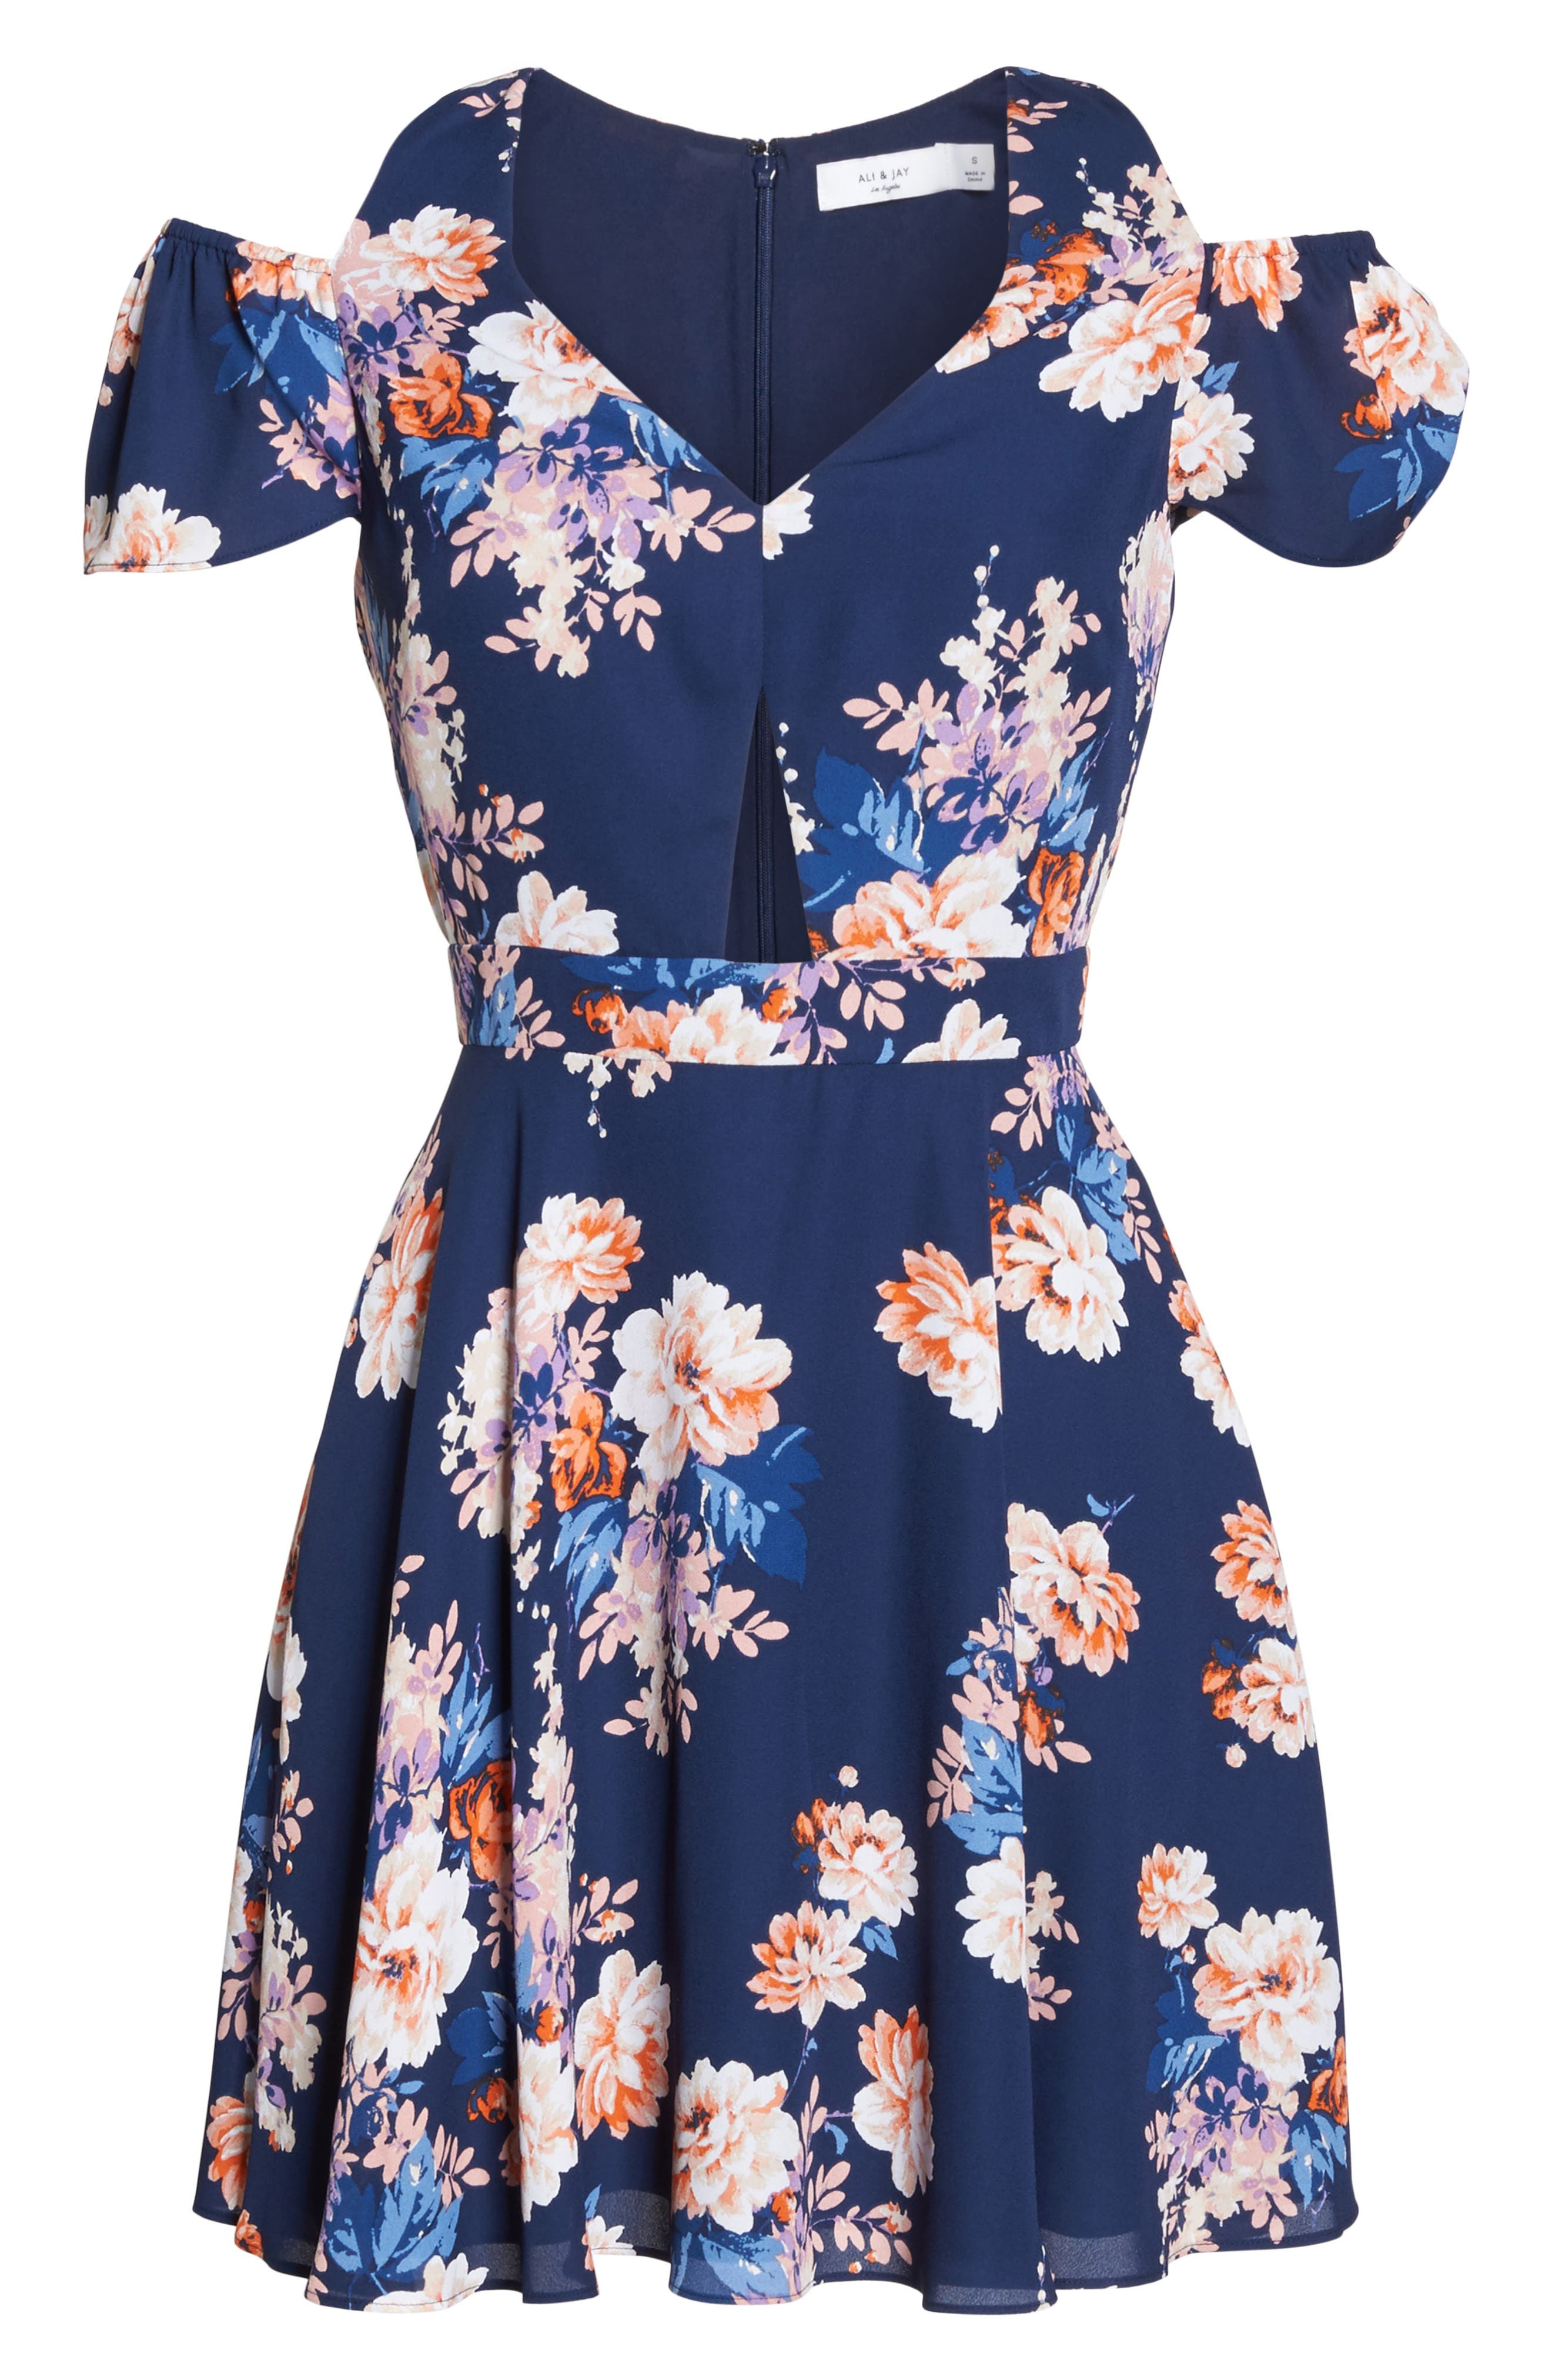 Chasing Butterflies Cold Shoulder Fit & Flare Dress,                             Alternate thumbnail 7, color,                             Navy Floral